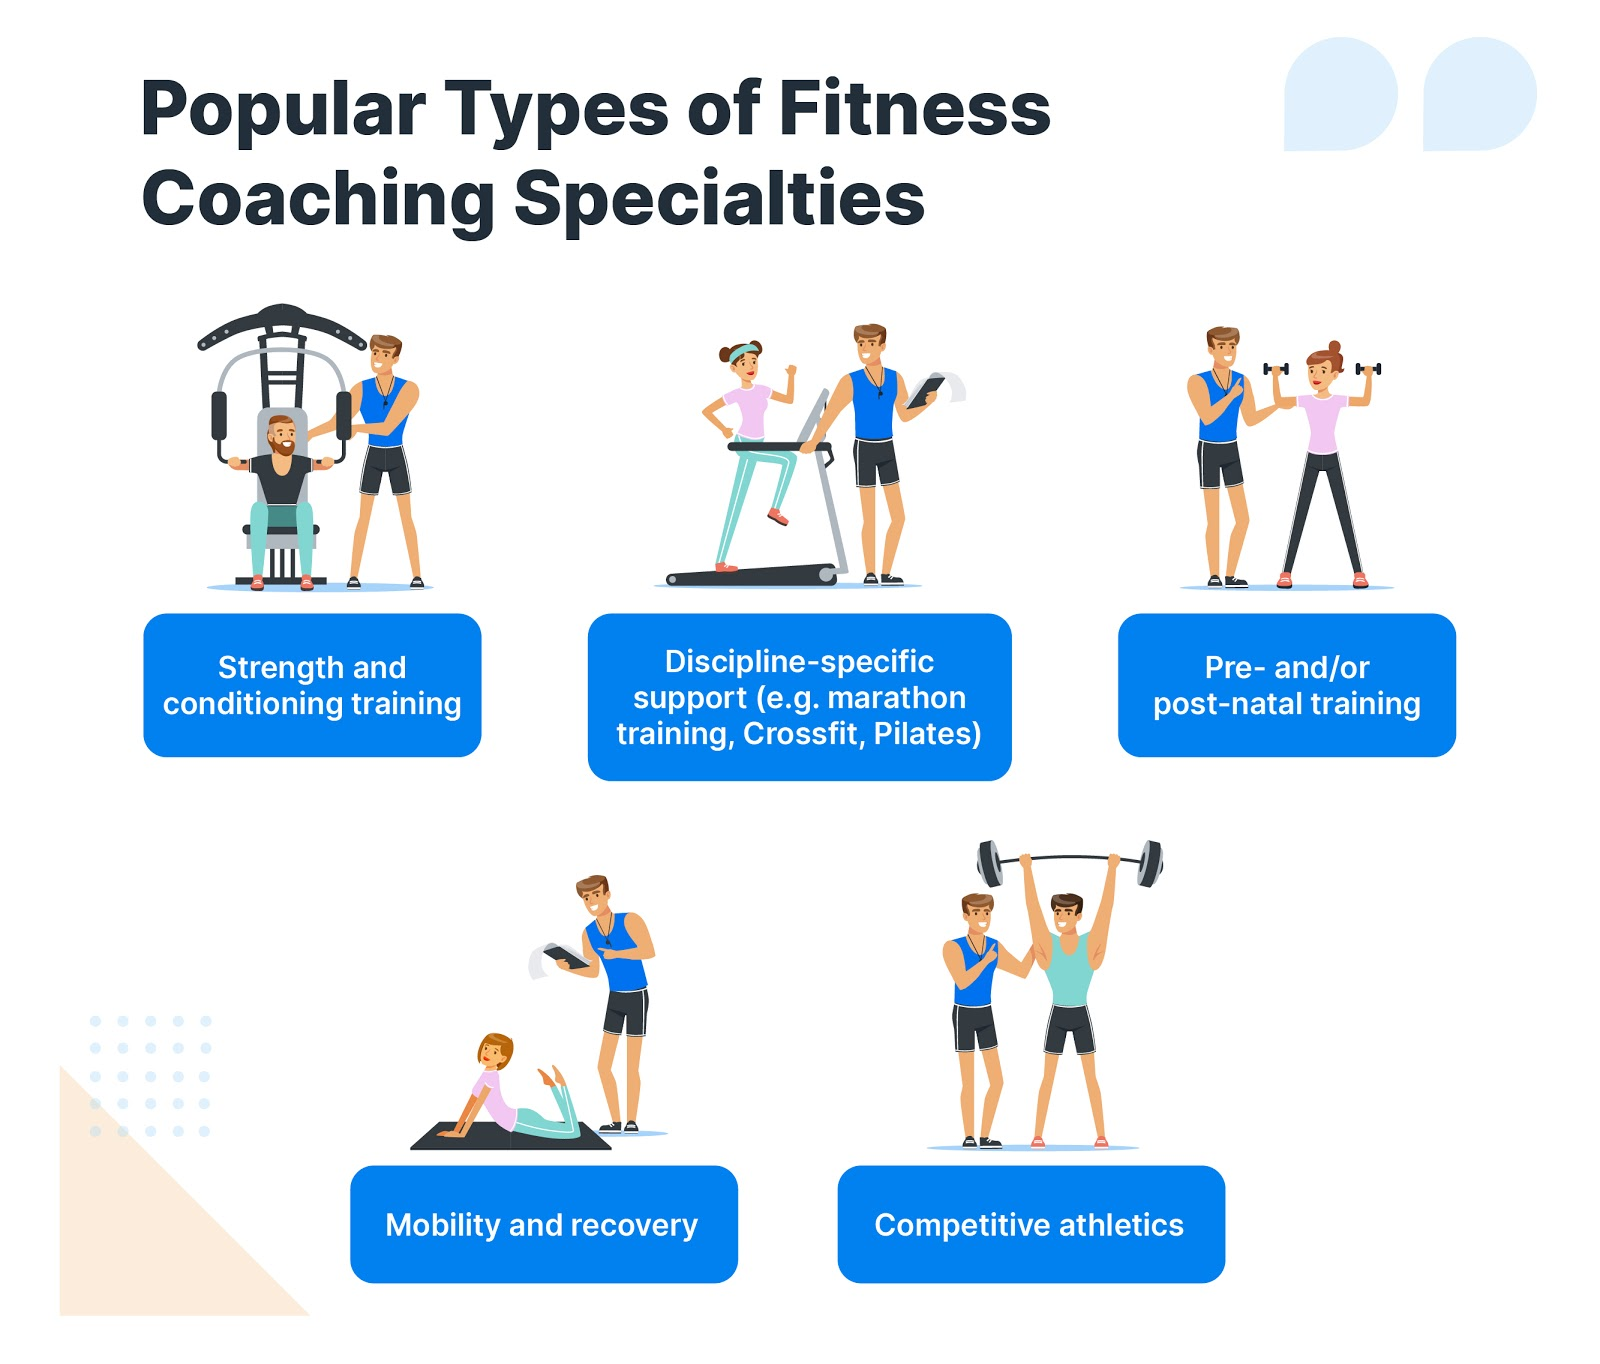 Different types of fitness coaching specialties